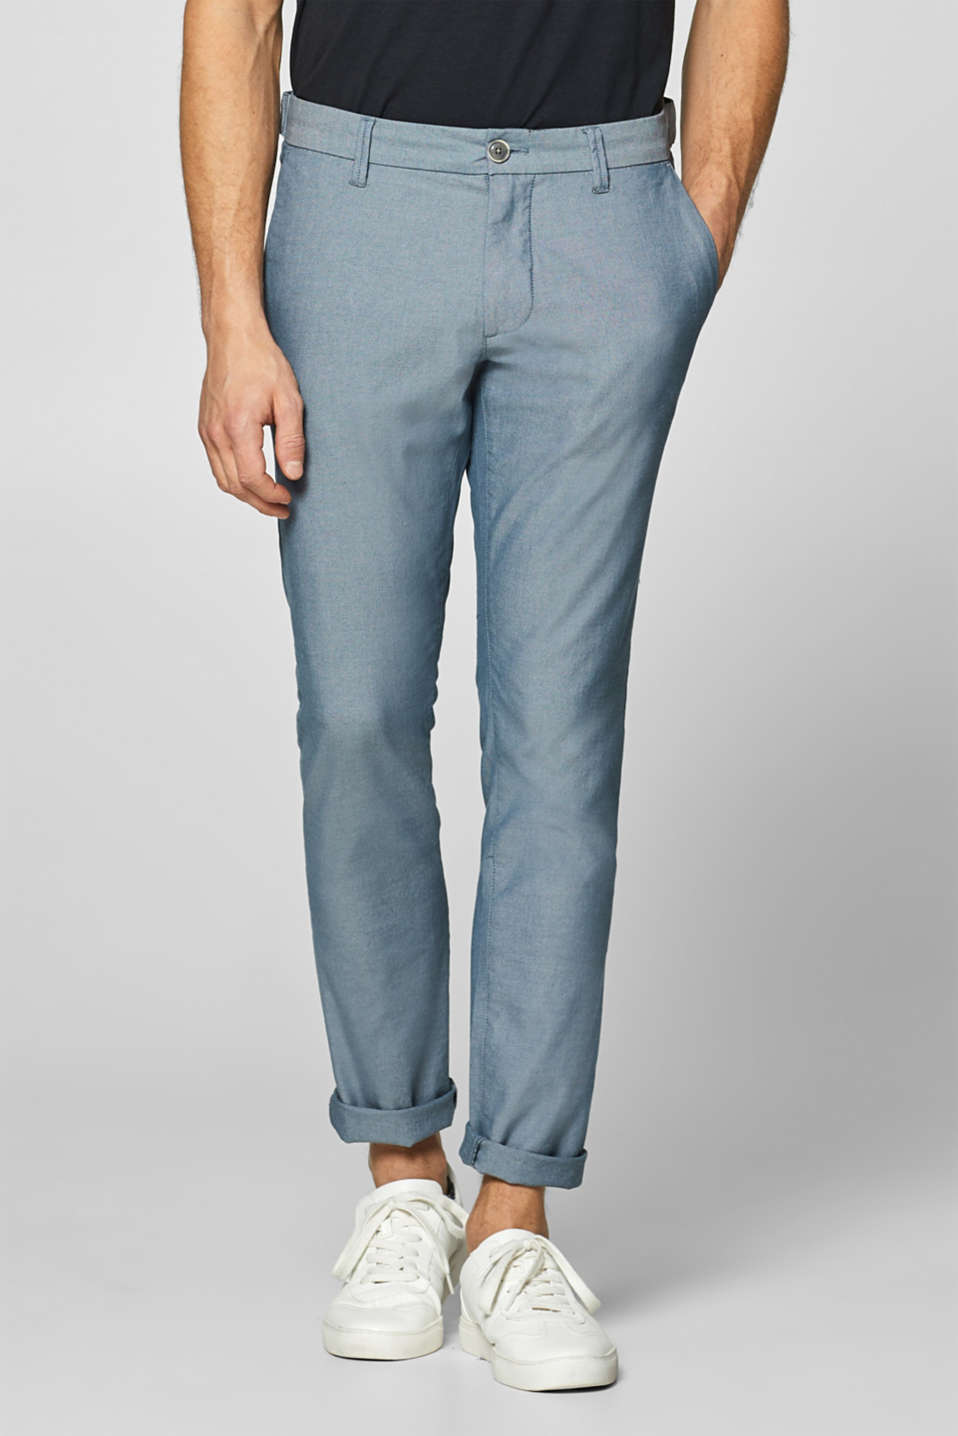 Esprit - Stretch trousers made of blended cotton